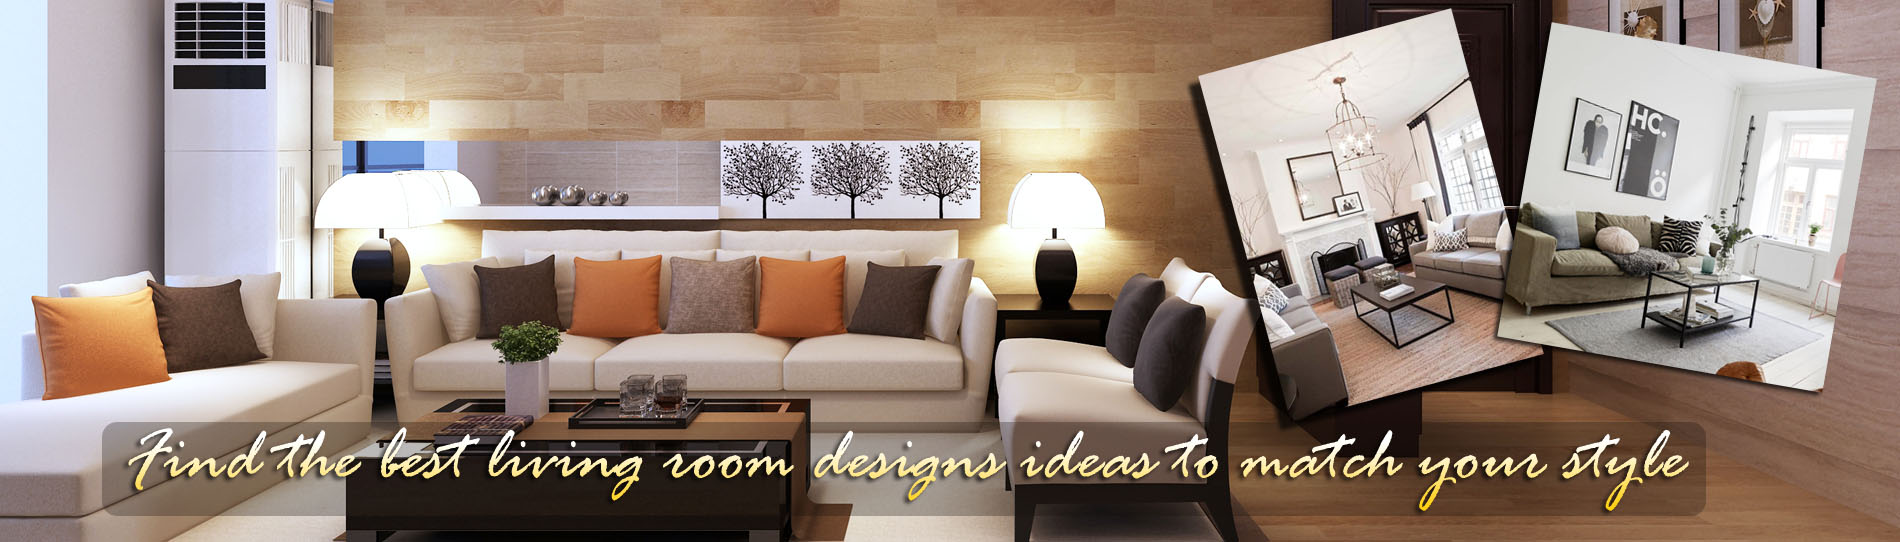 interior designers in trivandrum, best interior designers in trivandrum , apartment interior works in trivandrum, office interior works, modular kitchen works trivandrum , budget homes, low cost constructions , contractors in trivandrum